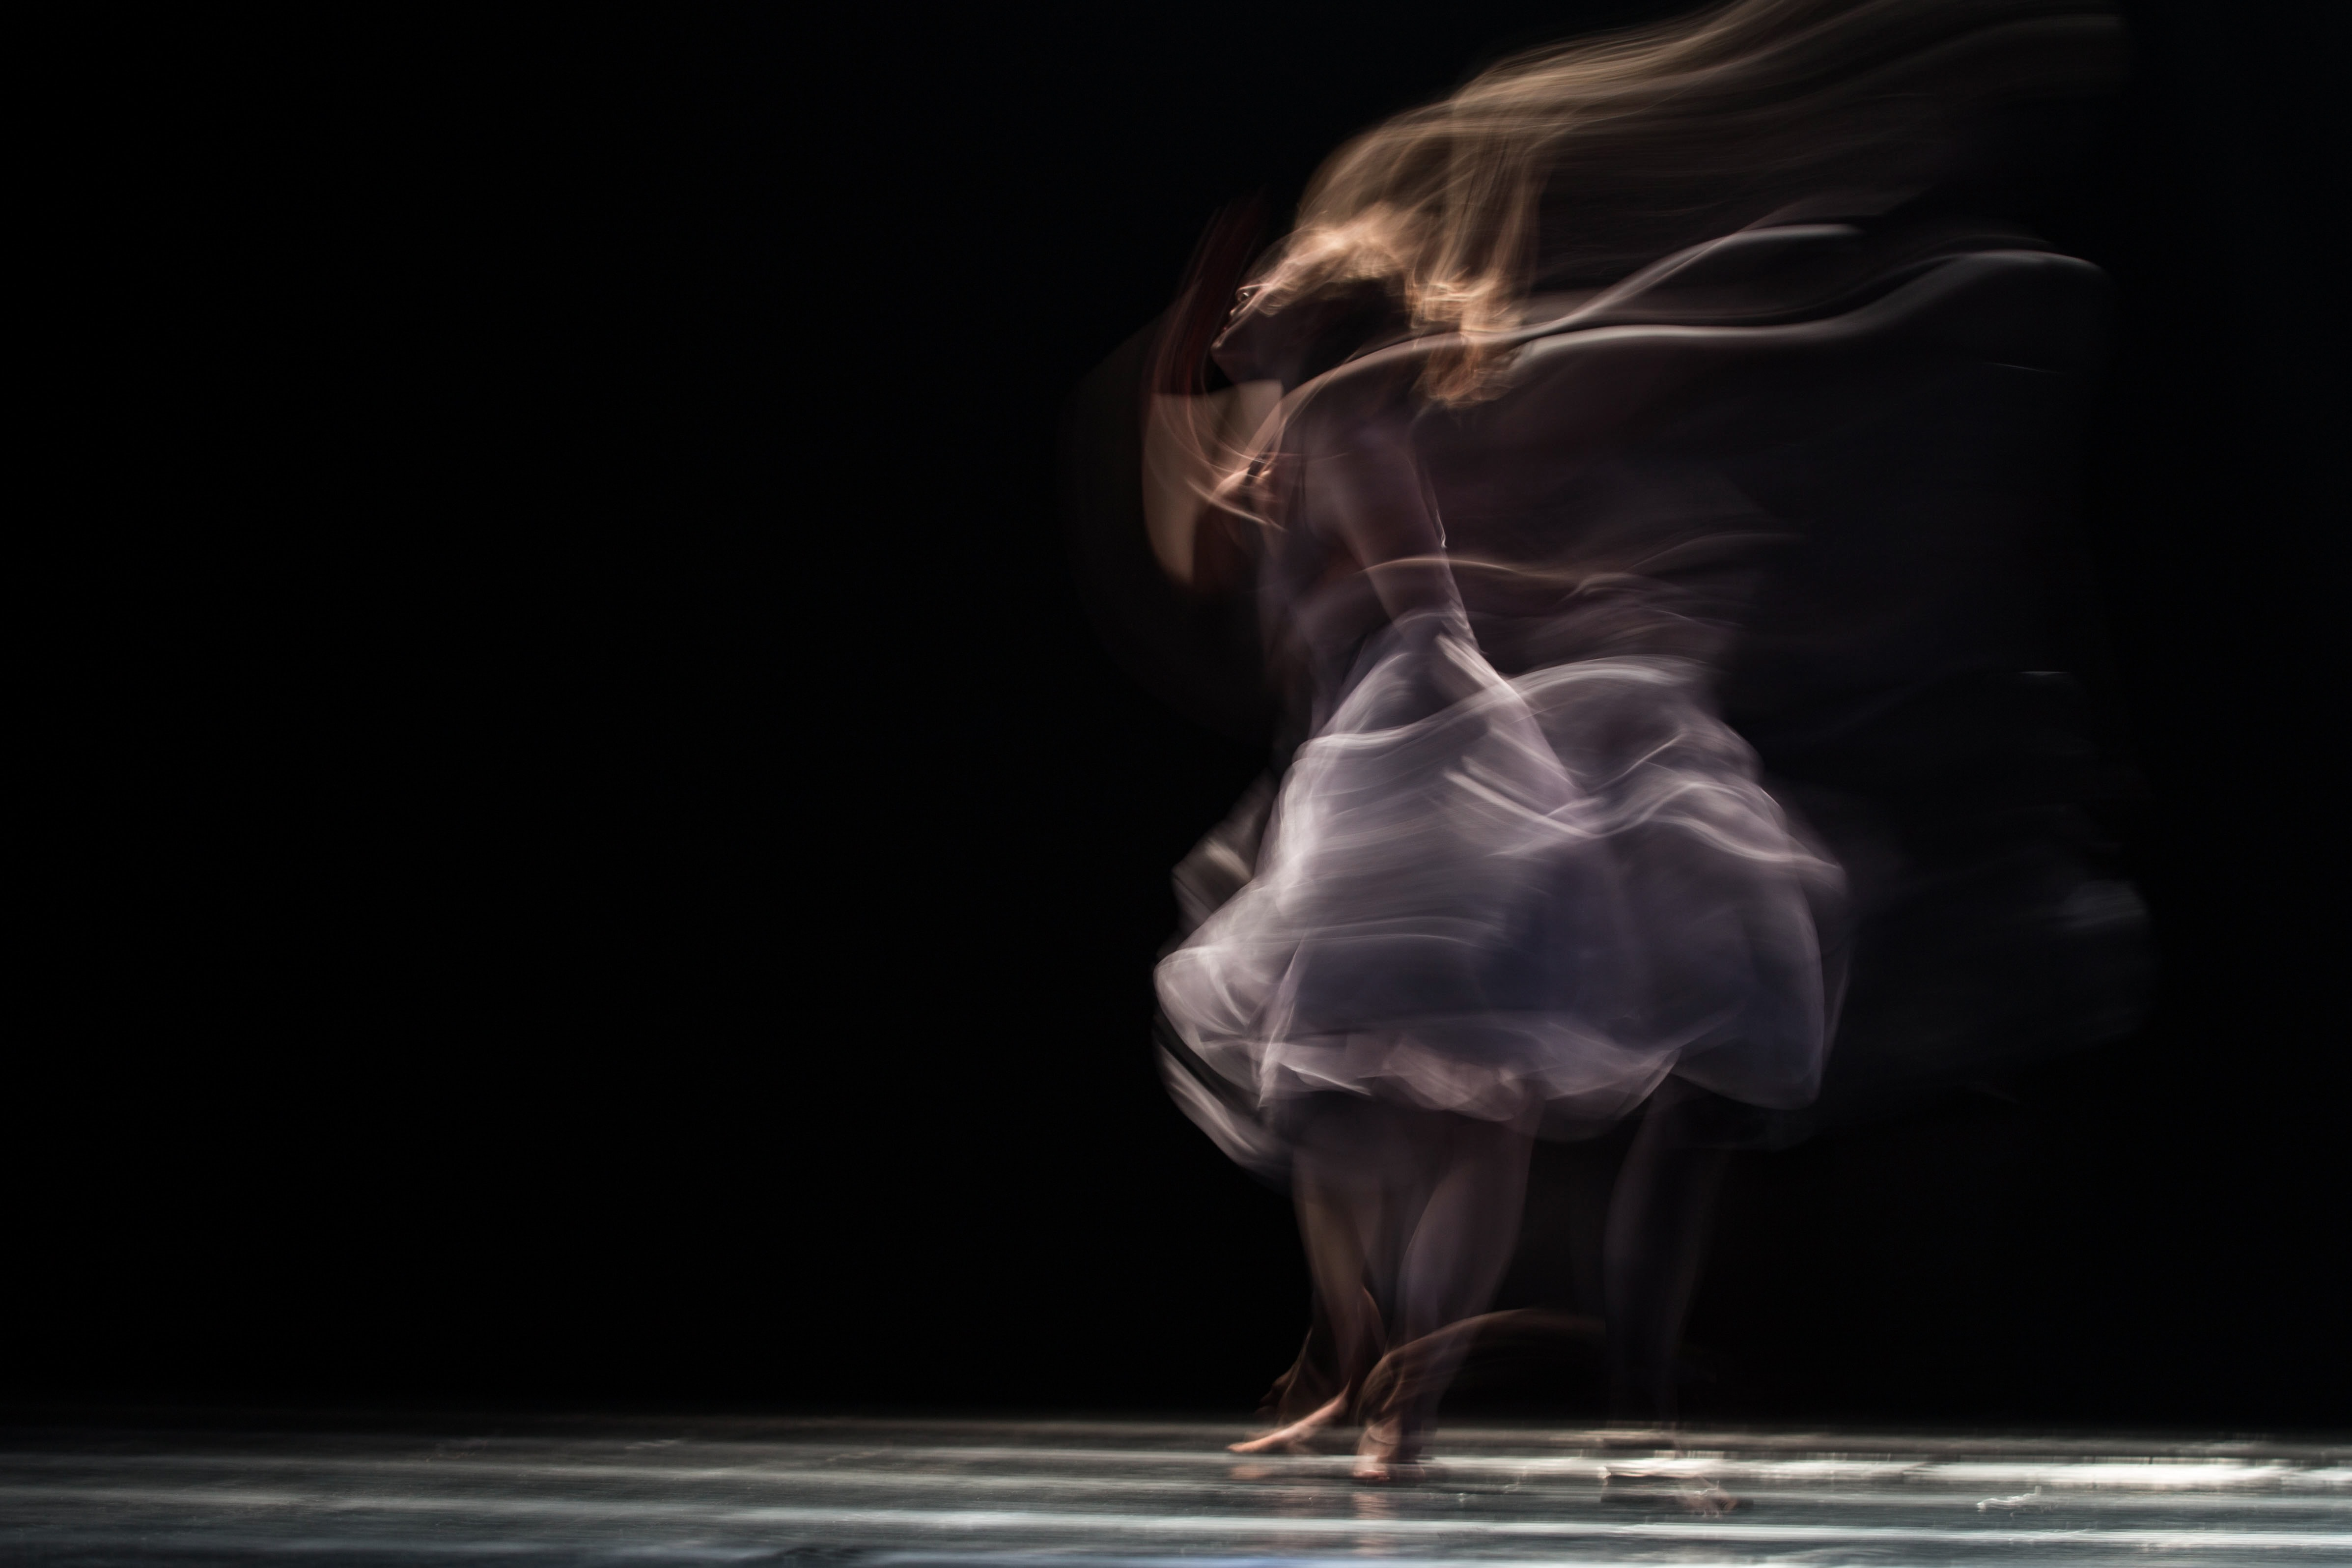 live stream art performance virtual online culture art localbini biniblog experience dancer artist on stage black with dress movement